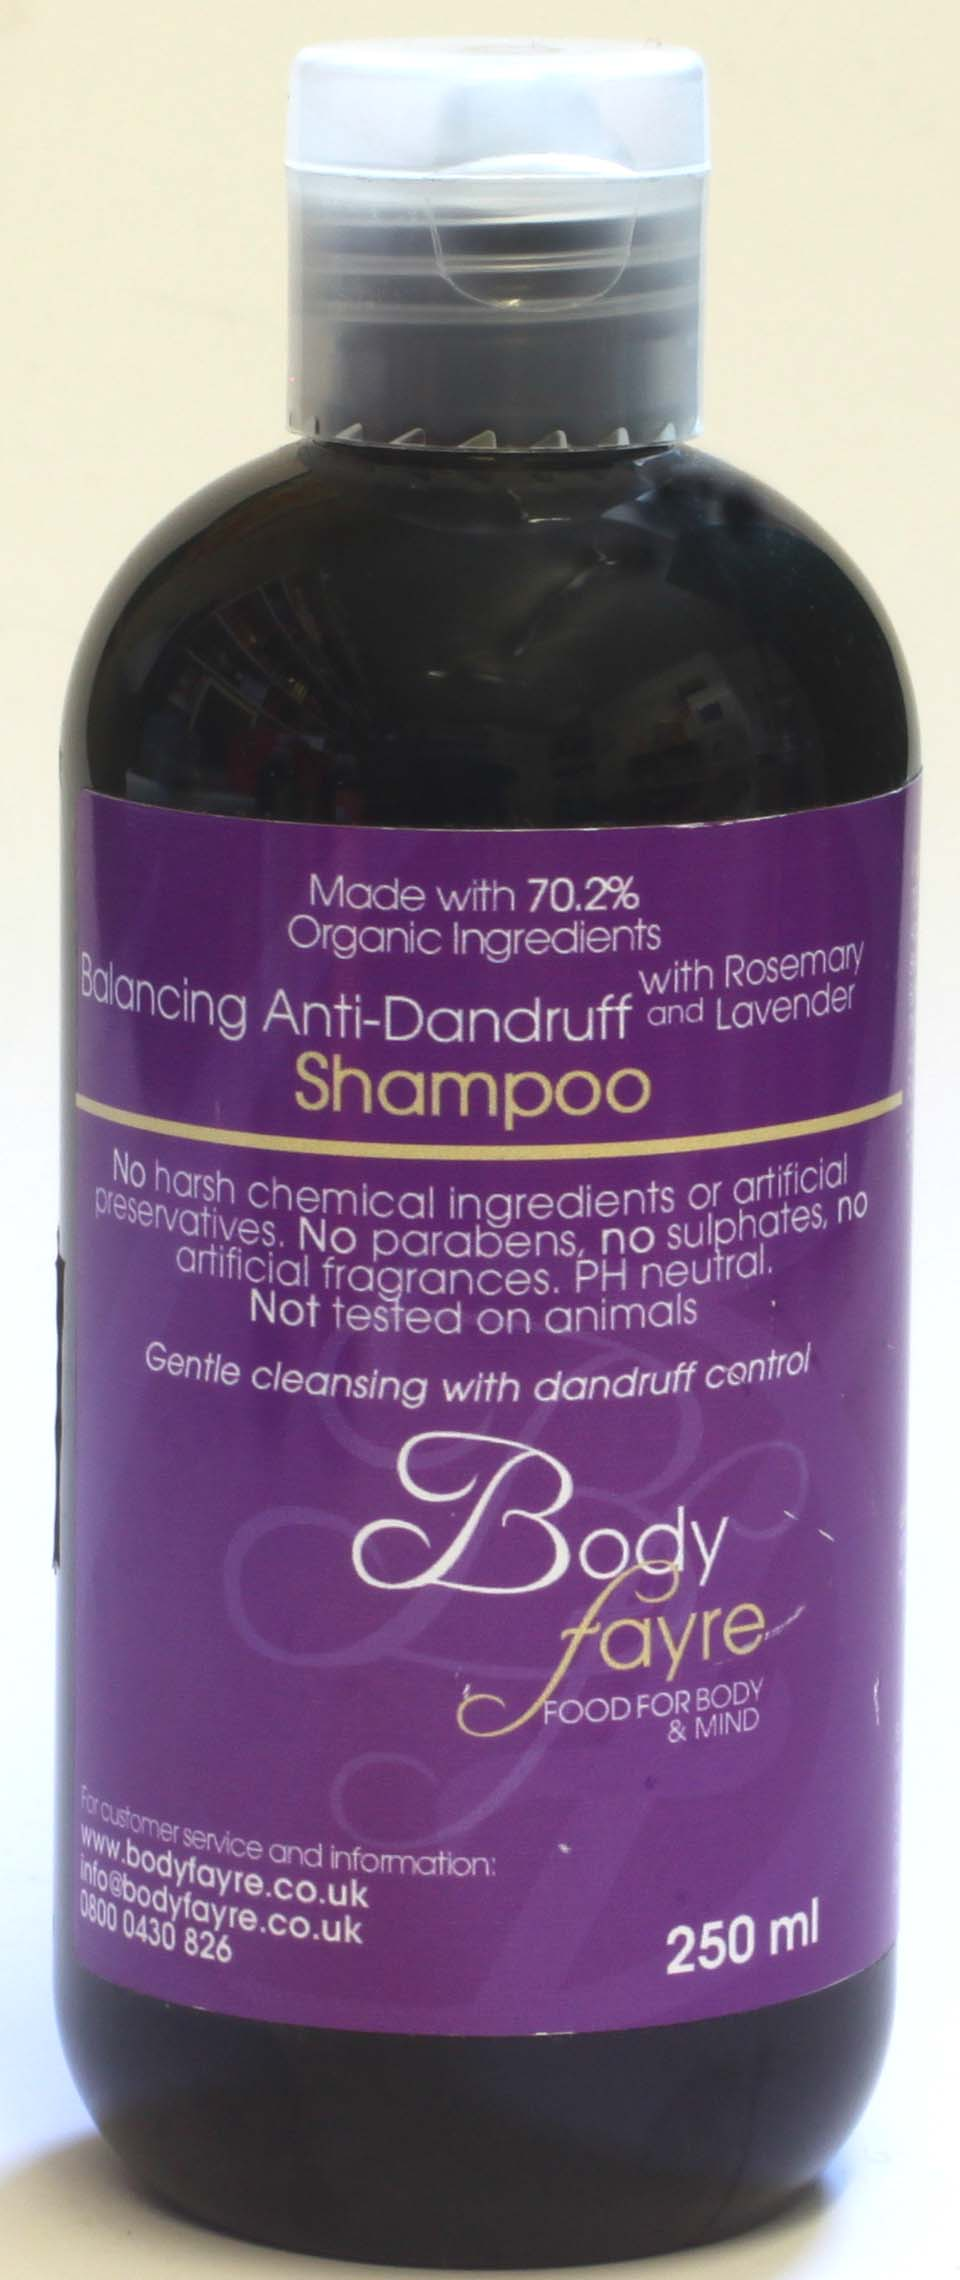 Body Fayre Balancing Anti-Dandruff Shampoo 250ml